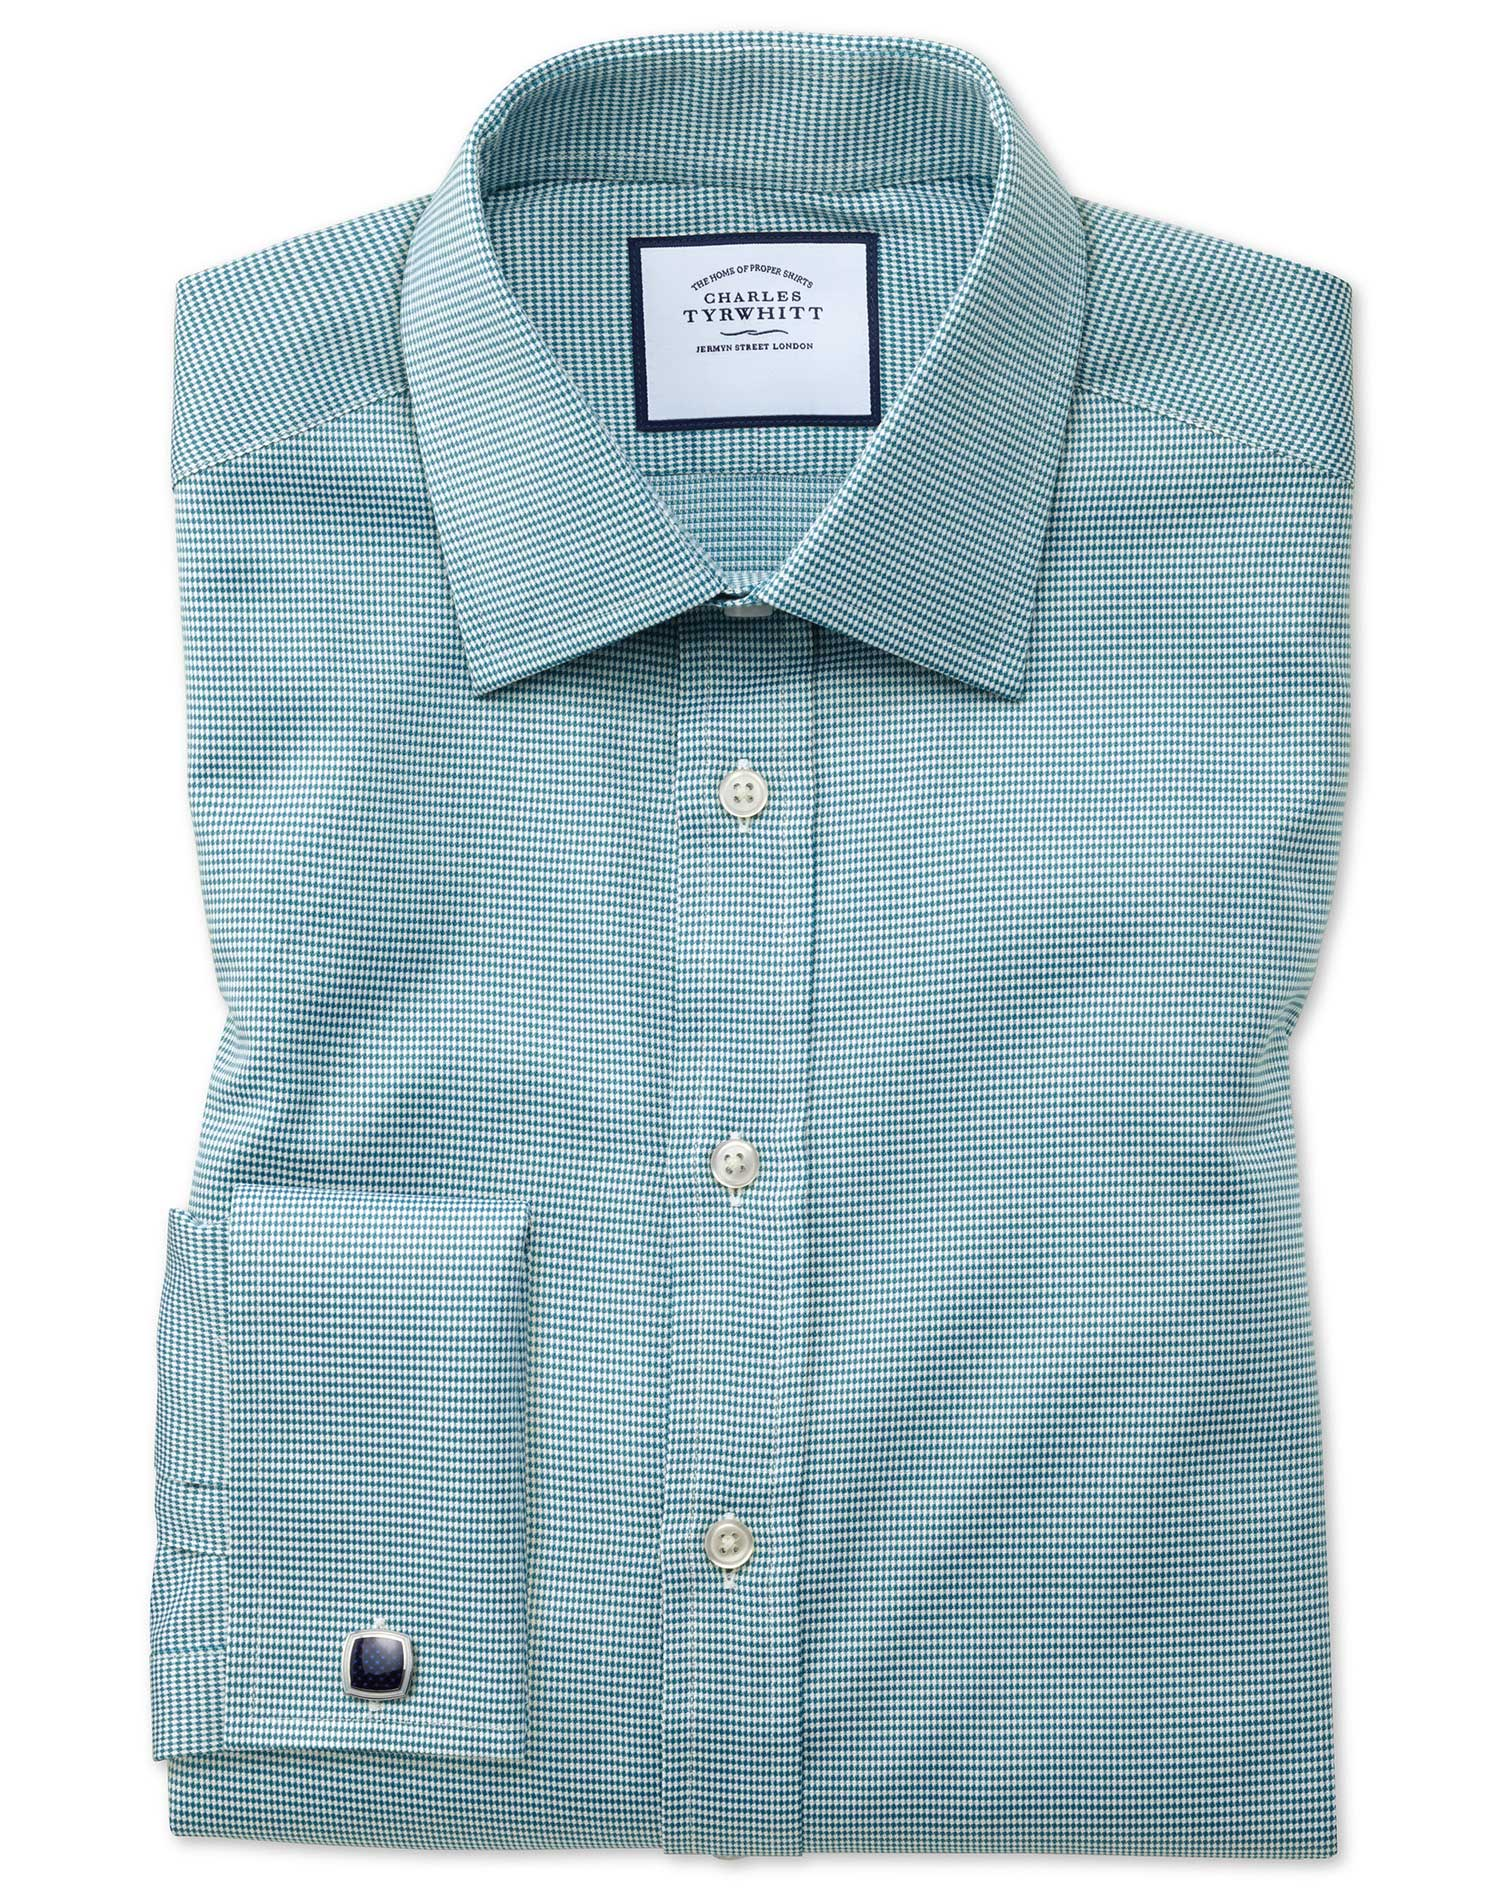 Slim Fit Teal Small Puppytooth Egyptian Cotton Formal Shirt Single Cuff Size 16.5/38 by Charles Tyrw